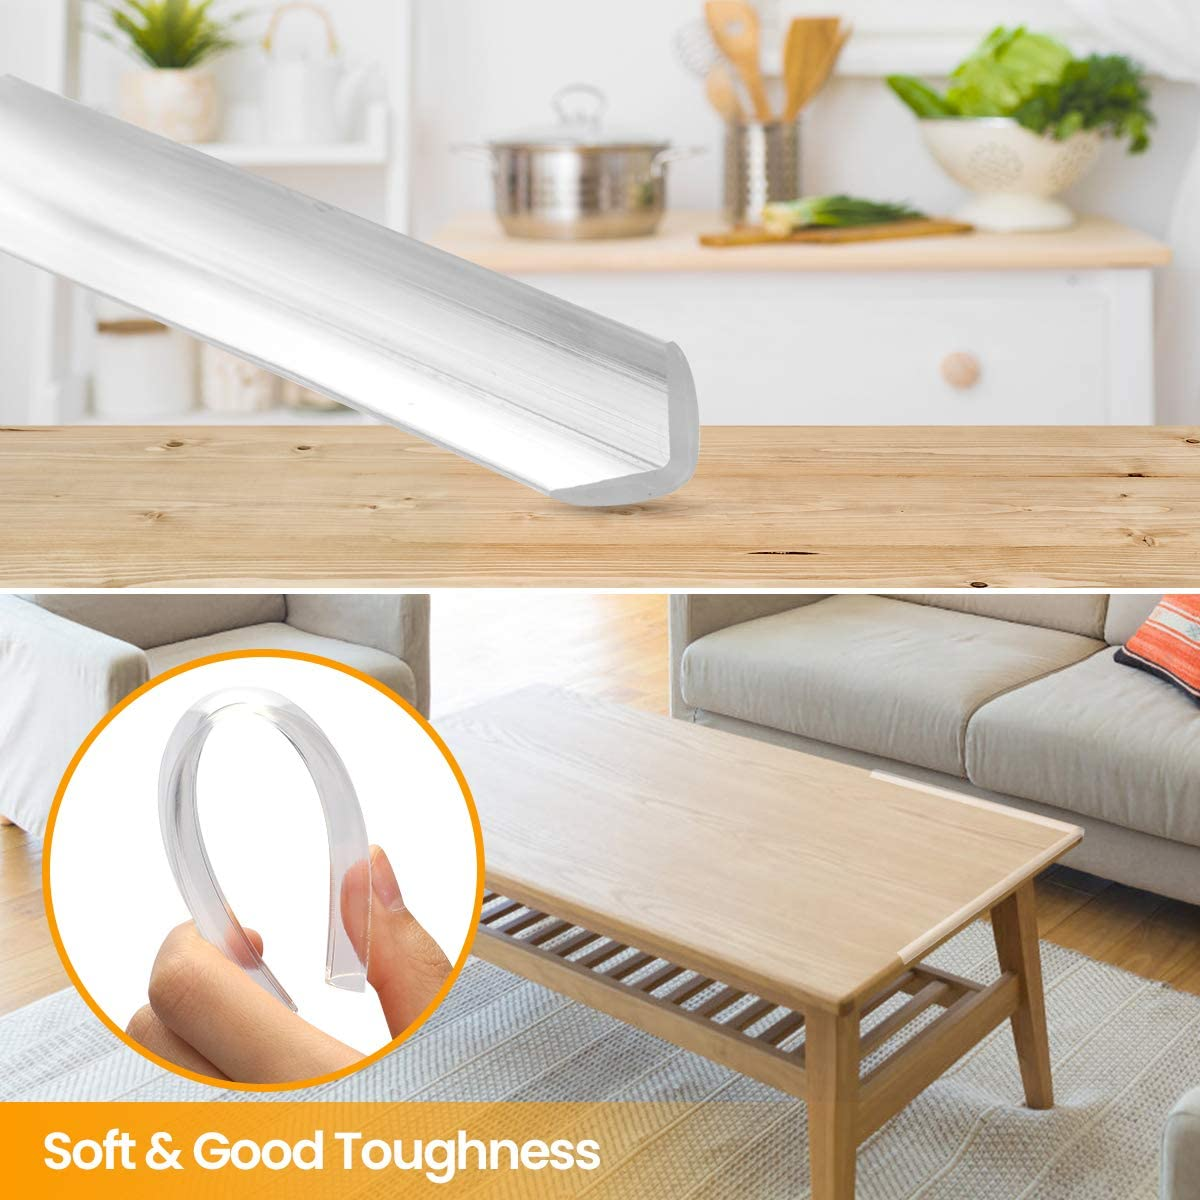 Safe Edge /& Corner Cushion Clear Pre-Taped Corners Table Protectors KIDDYz Transparent Baby Proofing Edge /& Corner Guards Child Safety Furniture Bumper